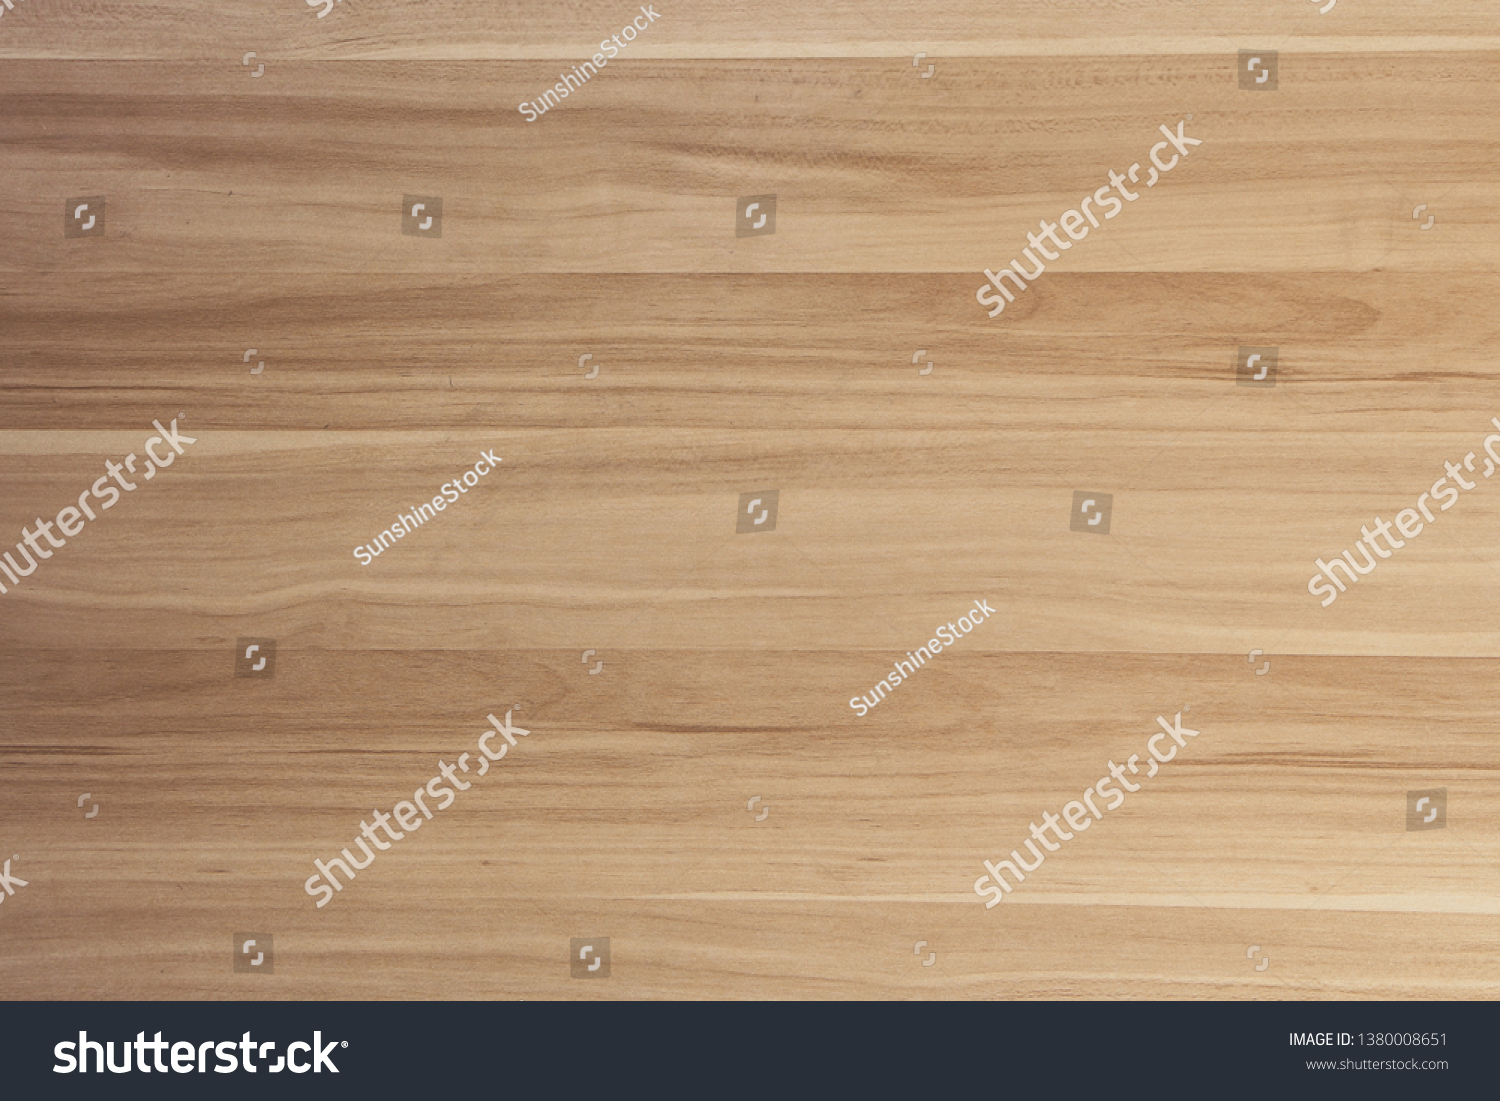 Wood texture. Abstract wood texture background #1380008651